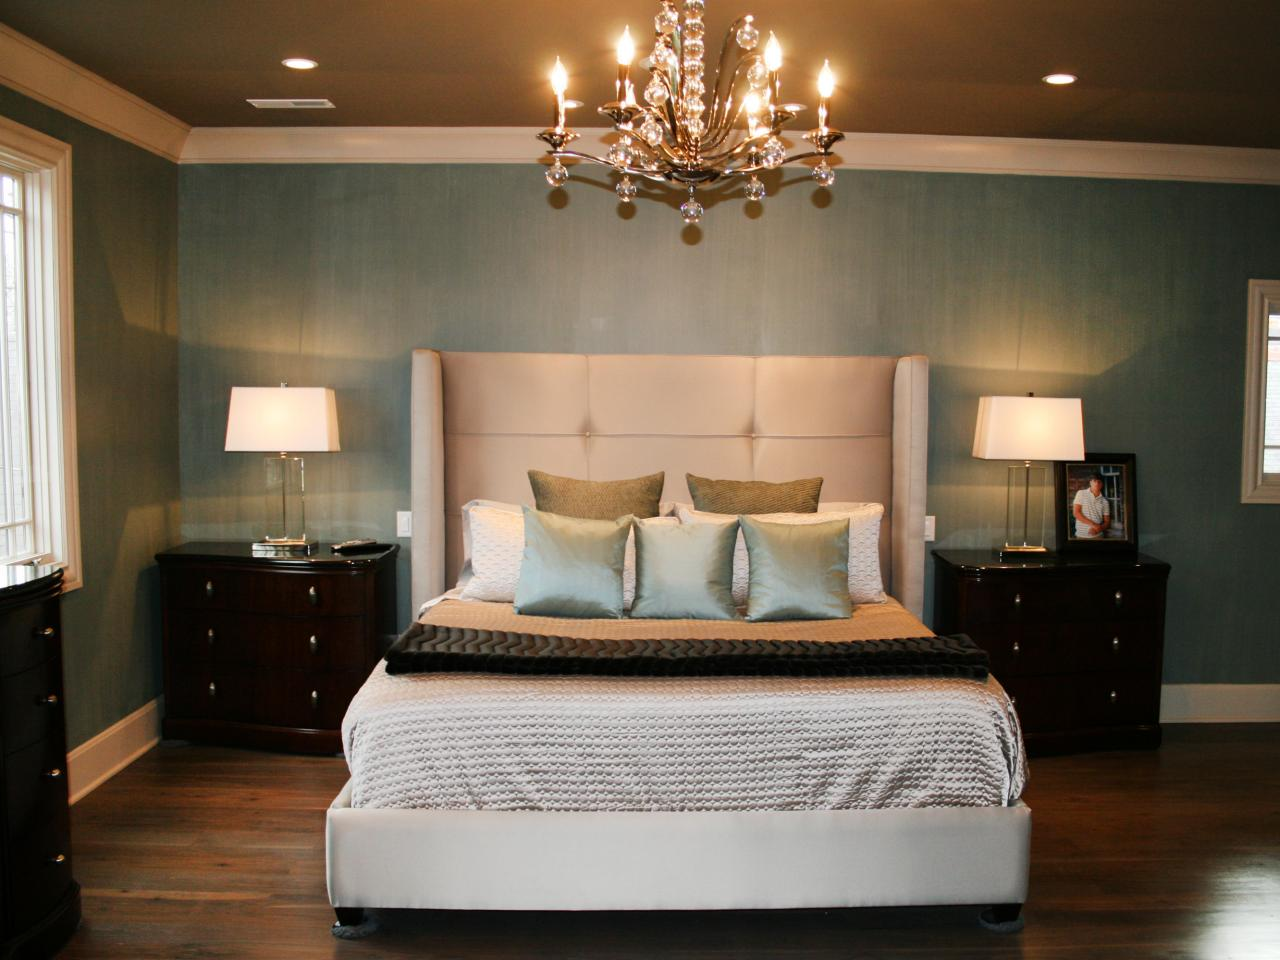 10 Warm Neutral Headboards Bedrooms Bedroom Decorating Ideas Hgtv: blue and tan bedroom decorating ideas